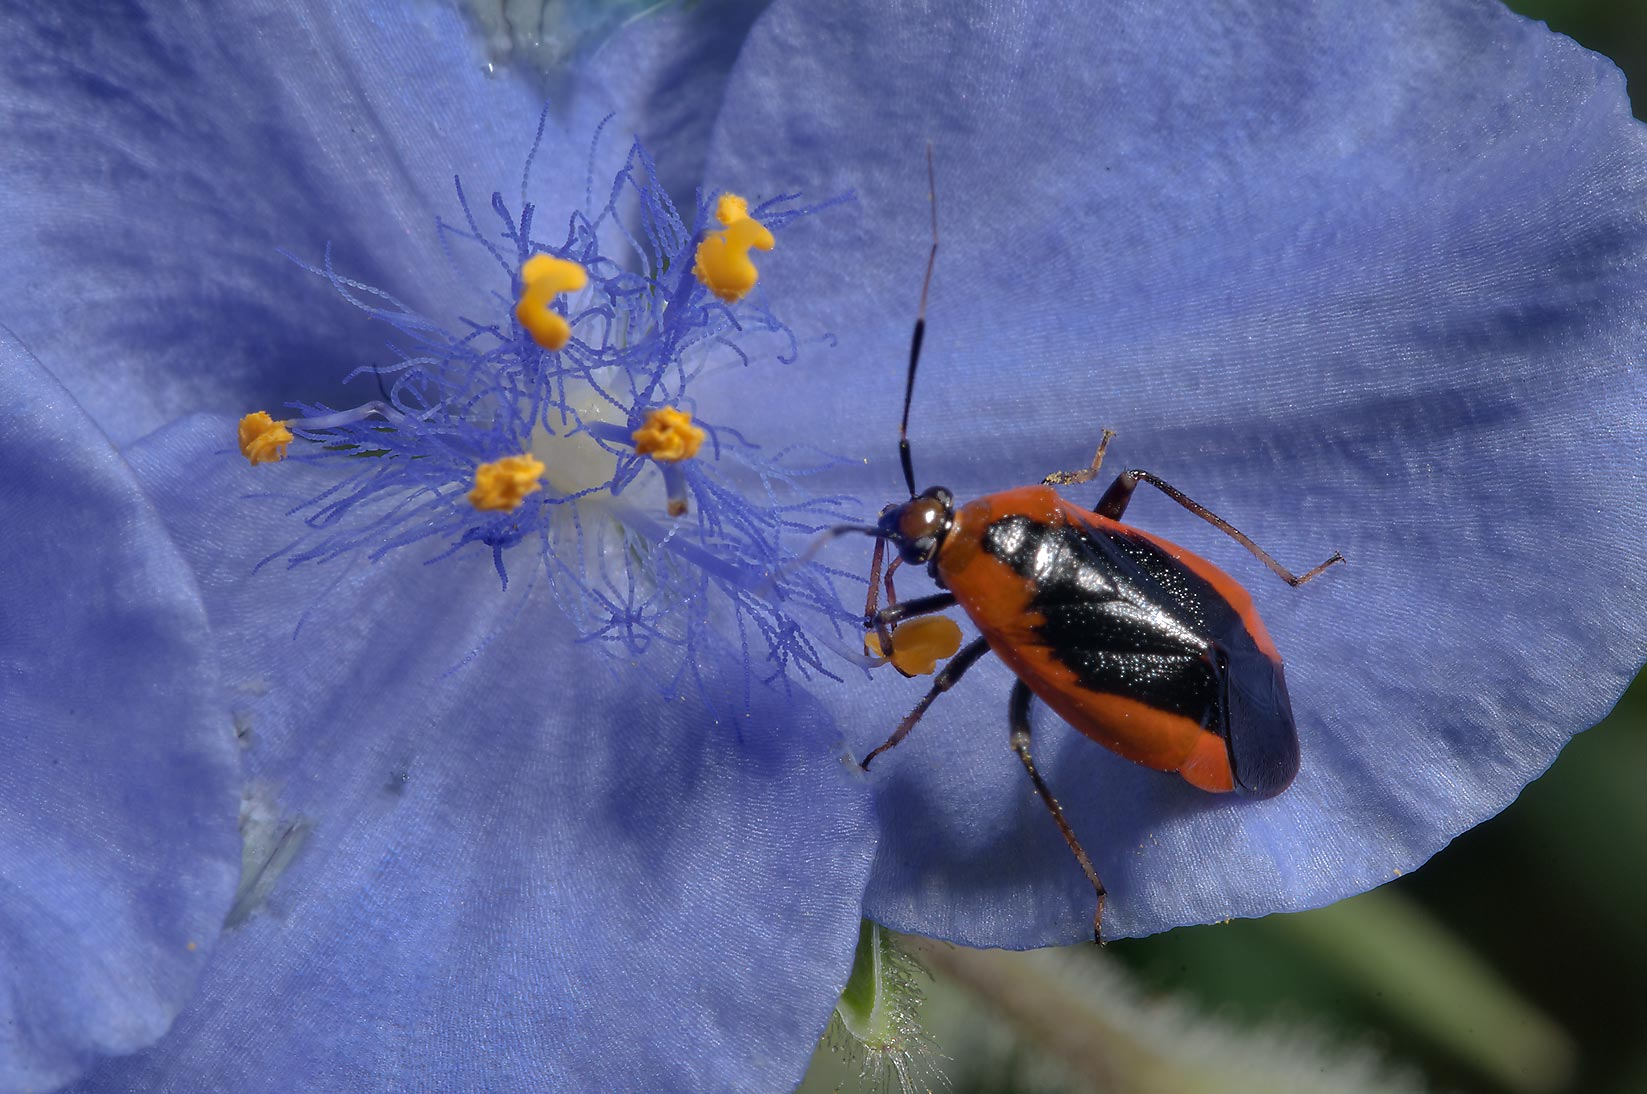 A bug on spiderwort (Tradescantia) in Birch Creek...of Lake Somerville State Park, Texas